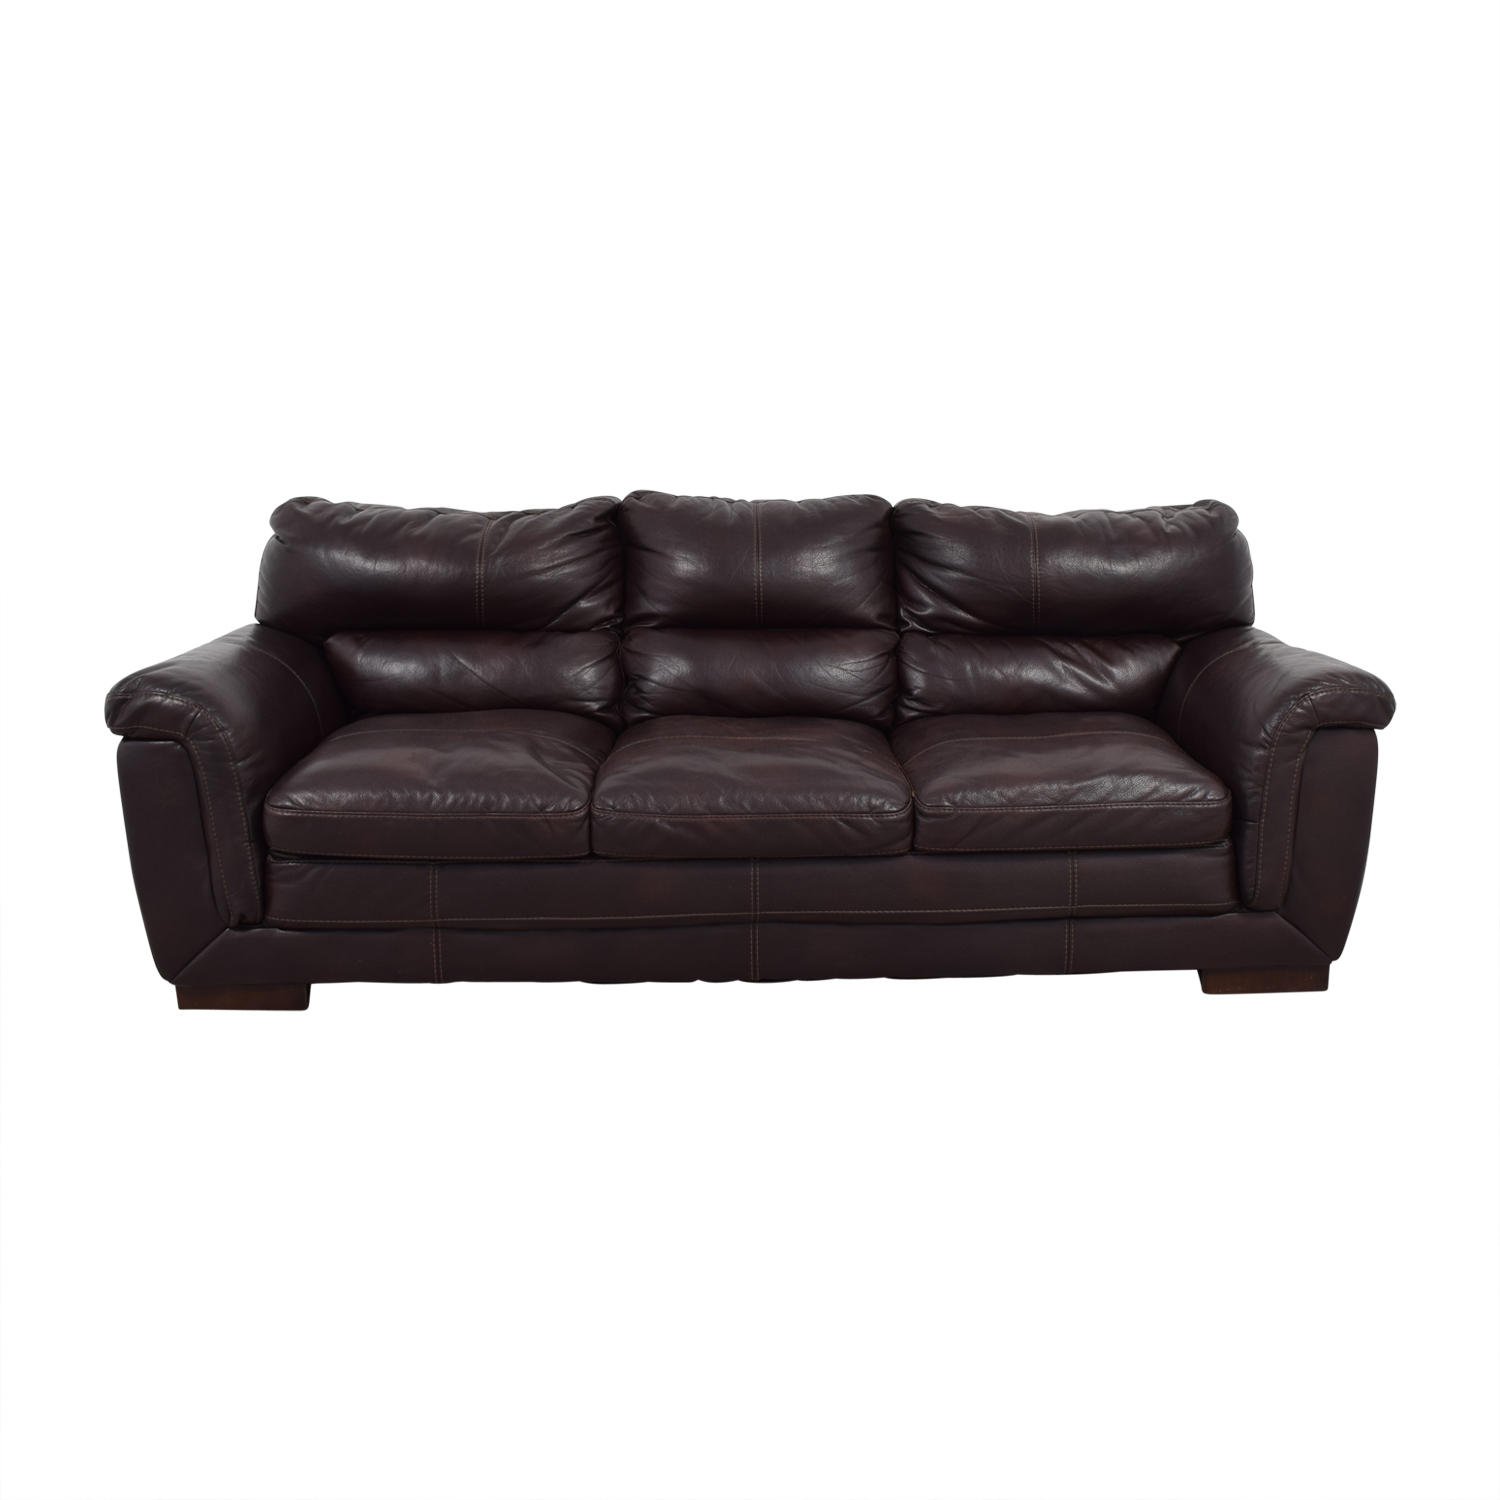 shop CB2 CB2 Brown Leather Three-Cushion Sofa online